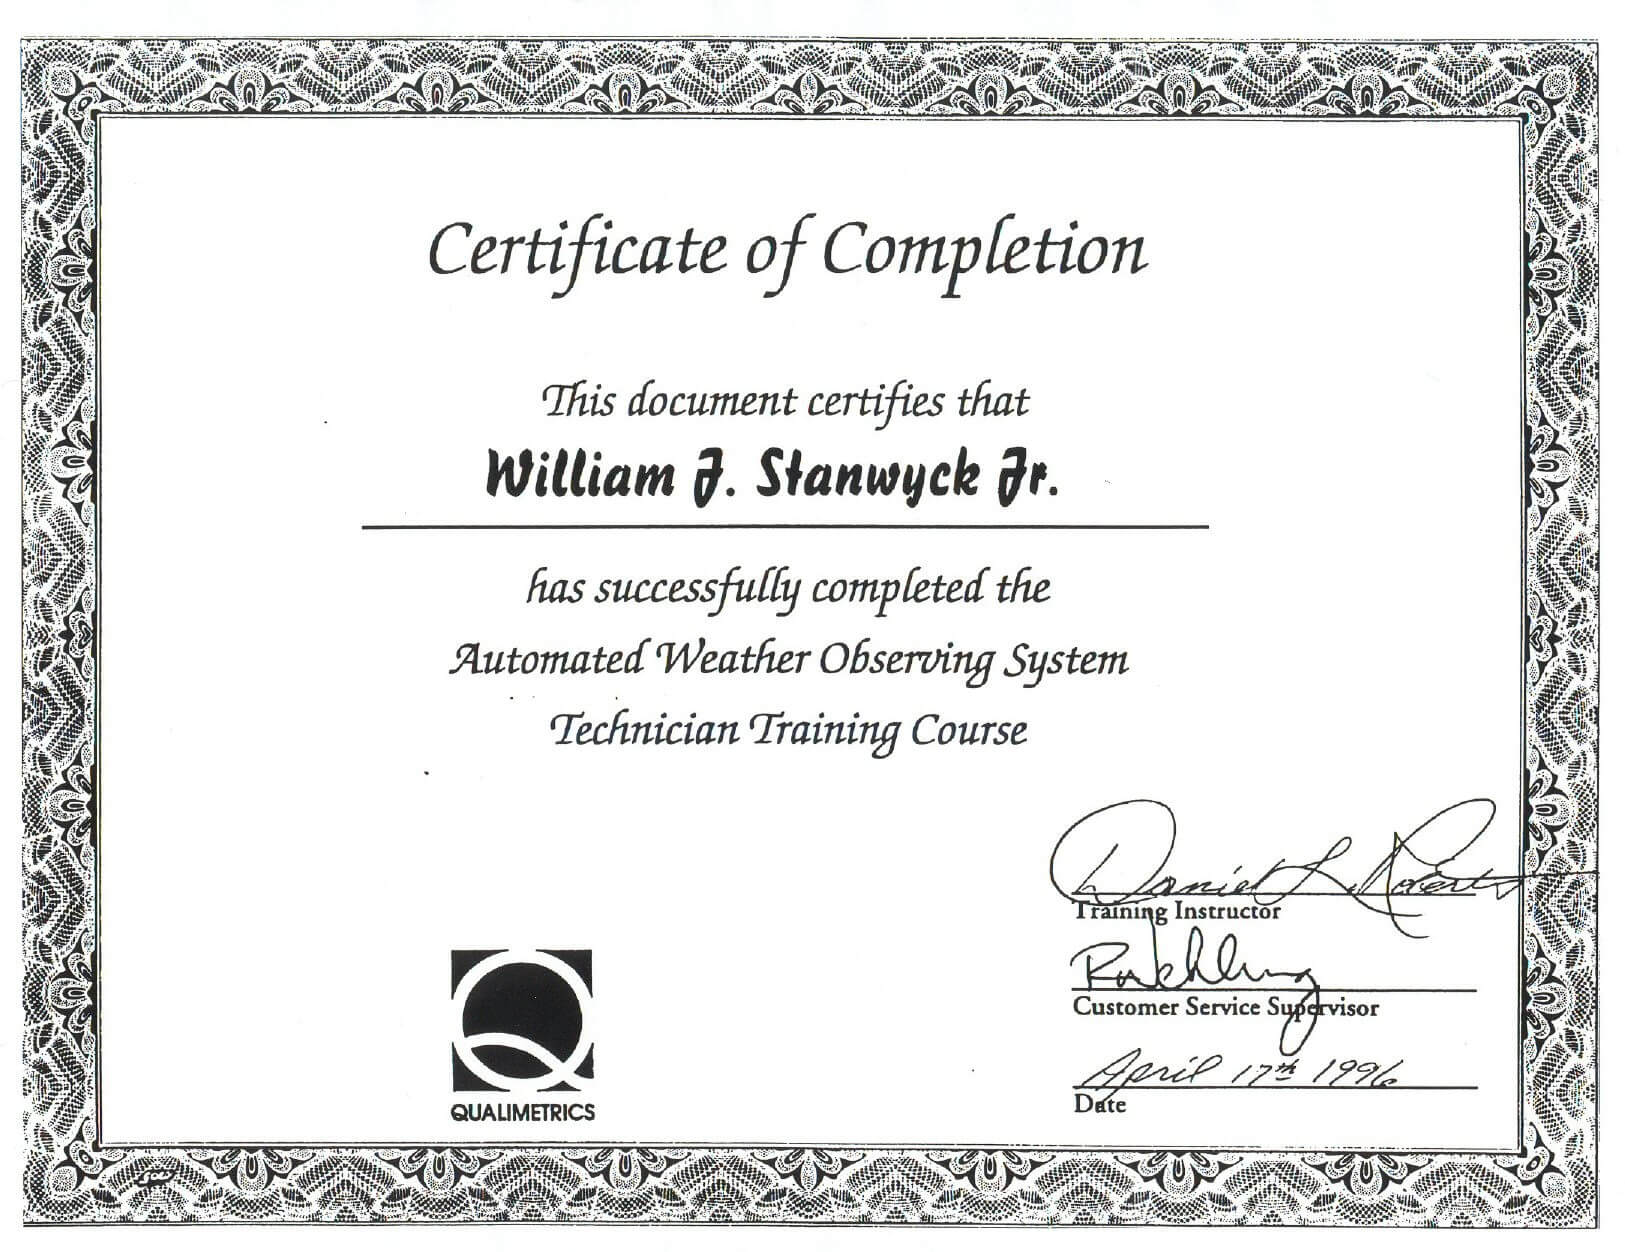 026 Template Ideas Certificates Free Gift Certificate Makes Inside This Certificate Entitles The Bearer To Template